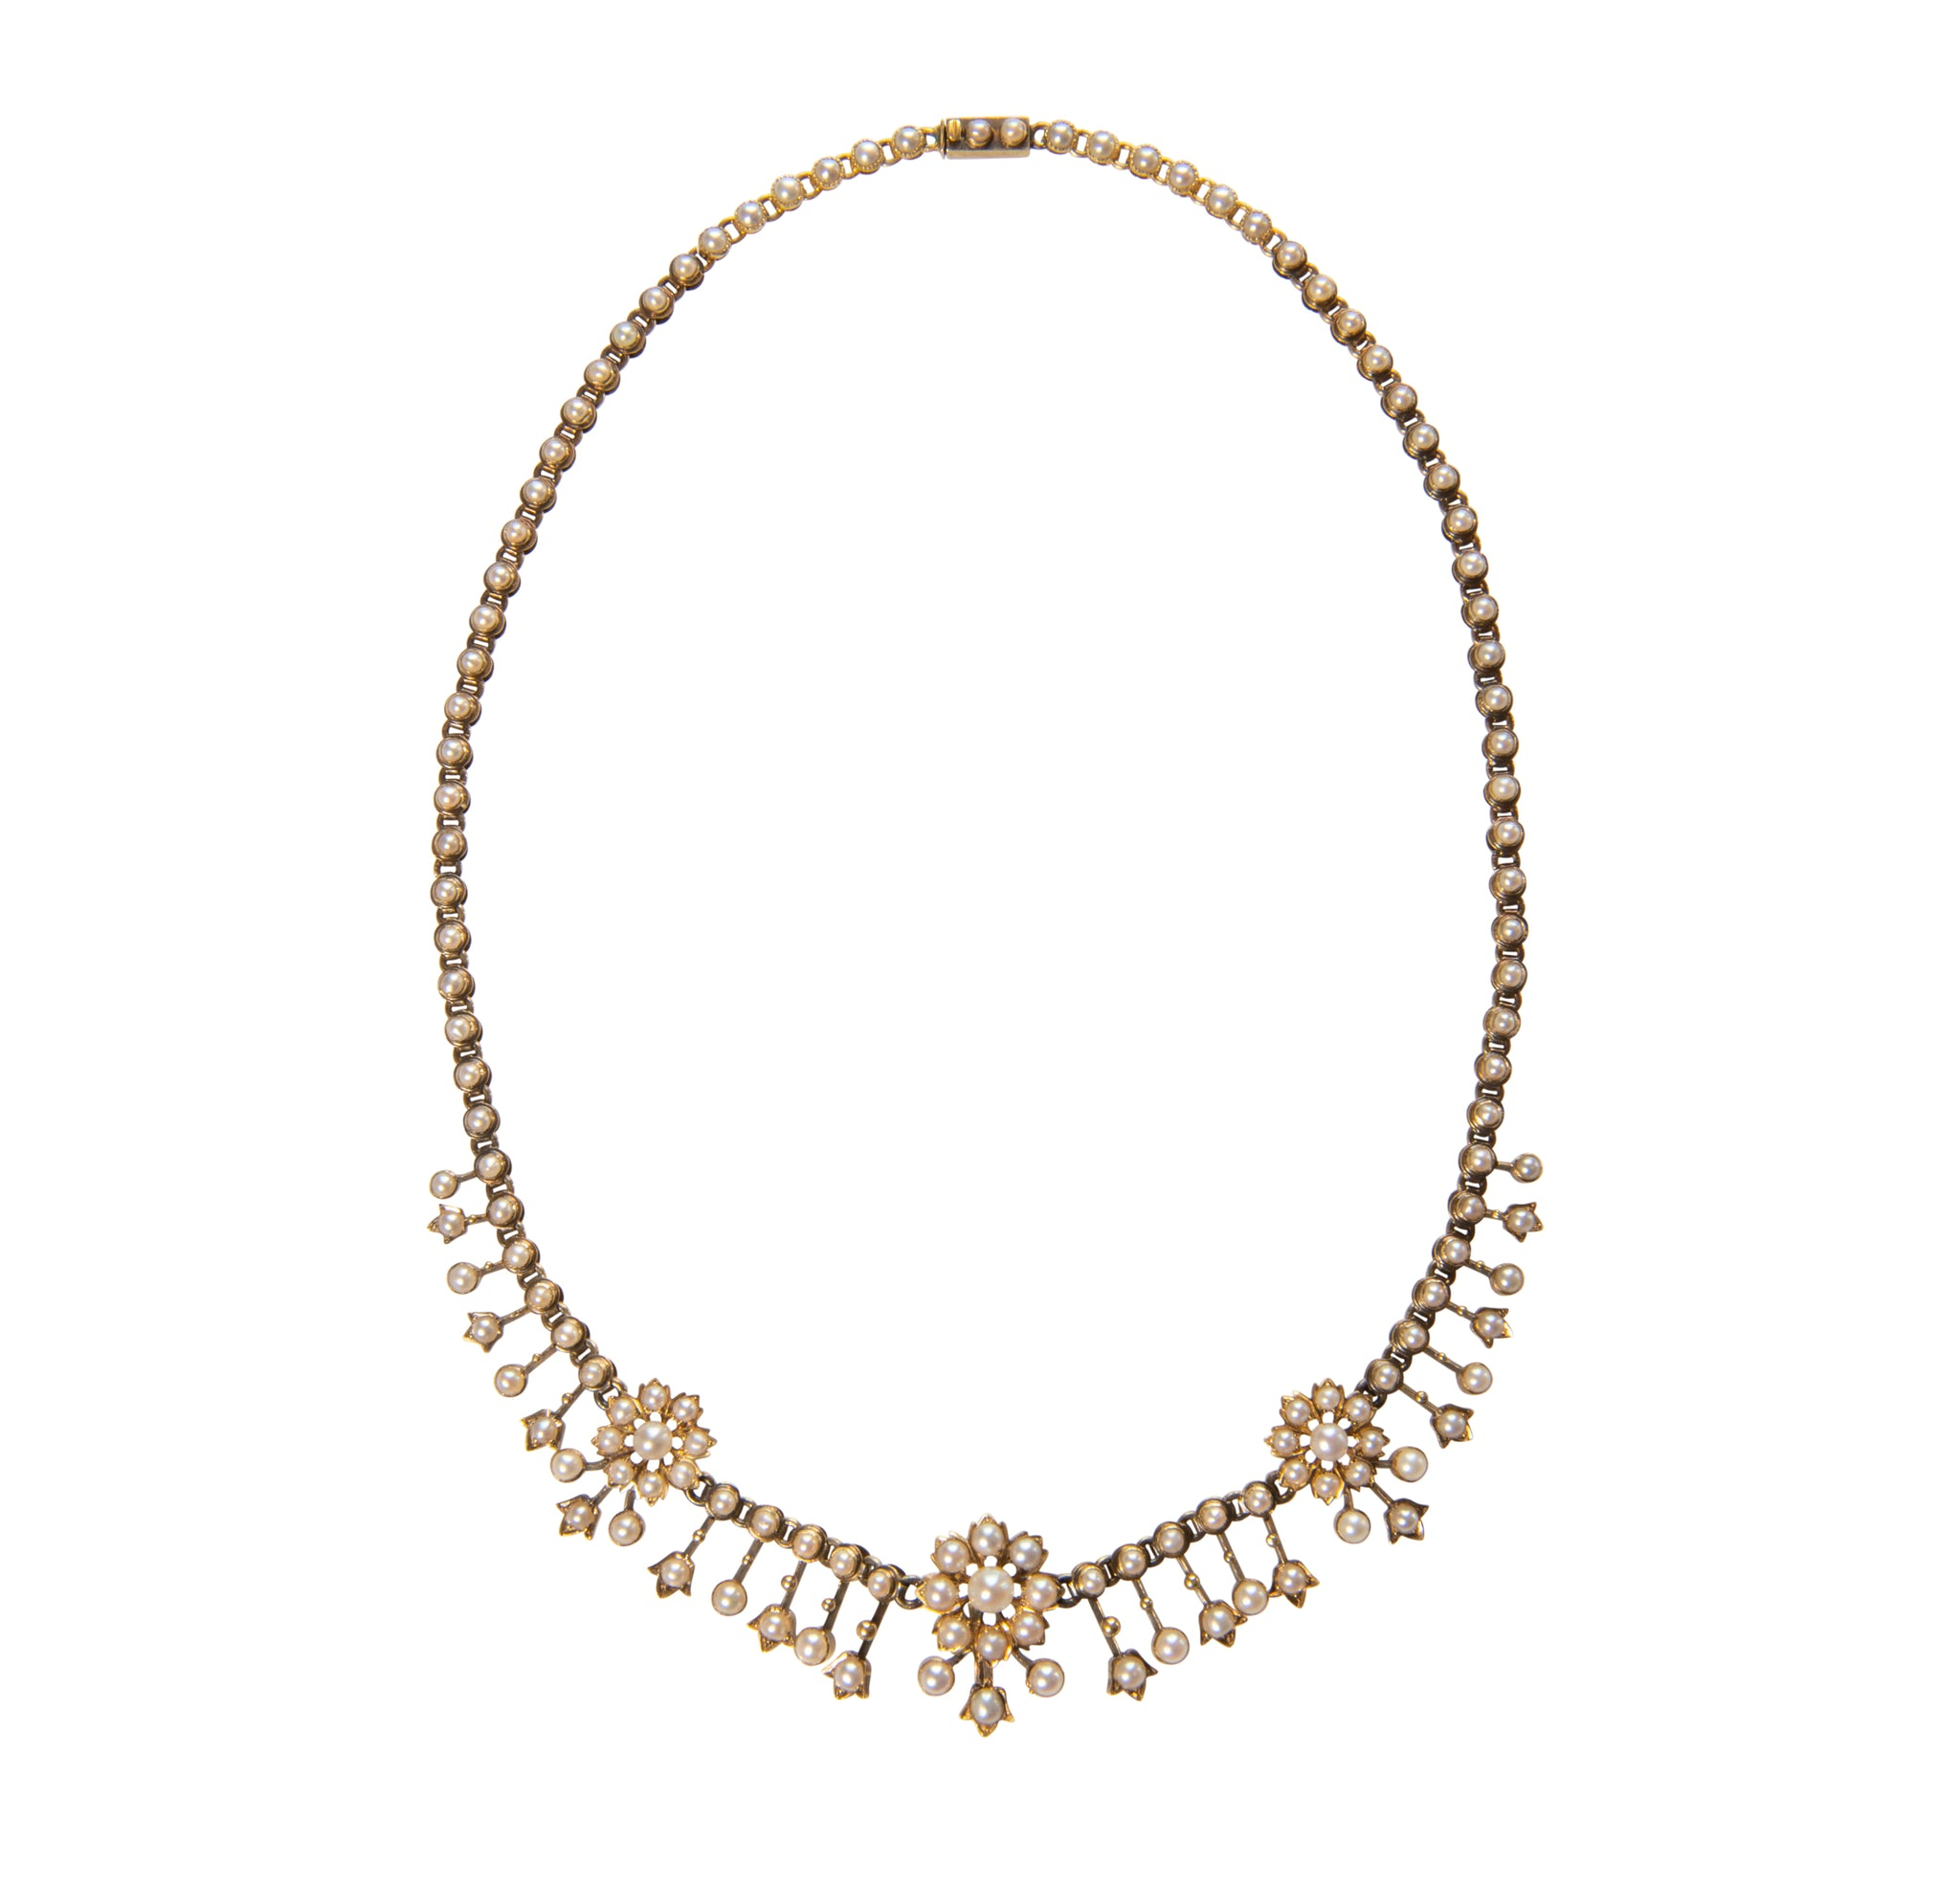 Victorian 15K Gold and Seed Pearl Necklace